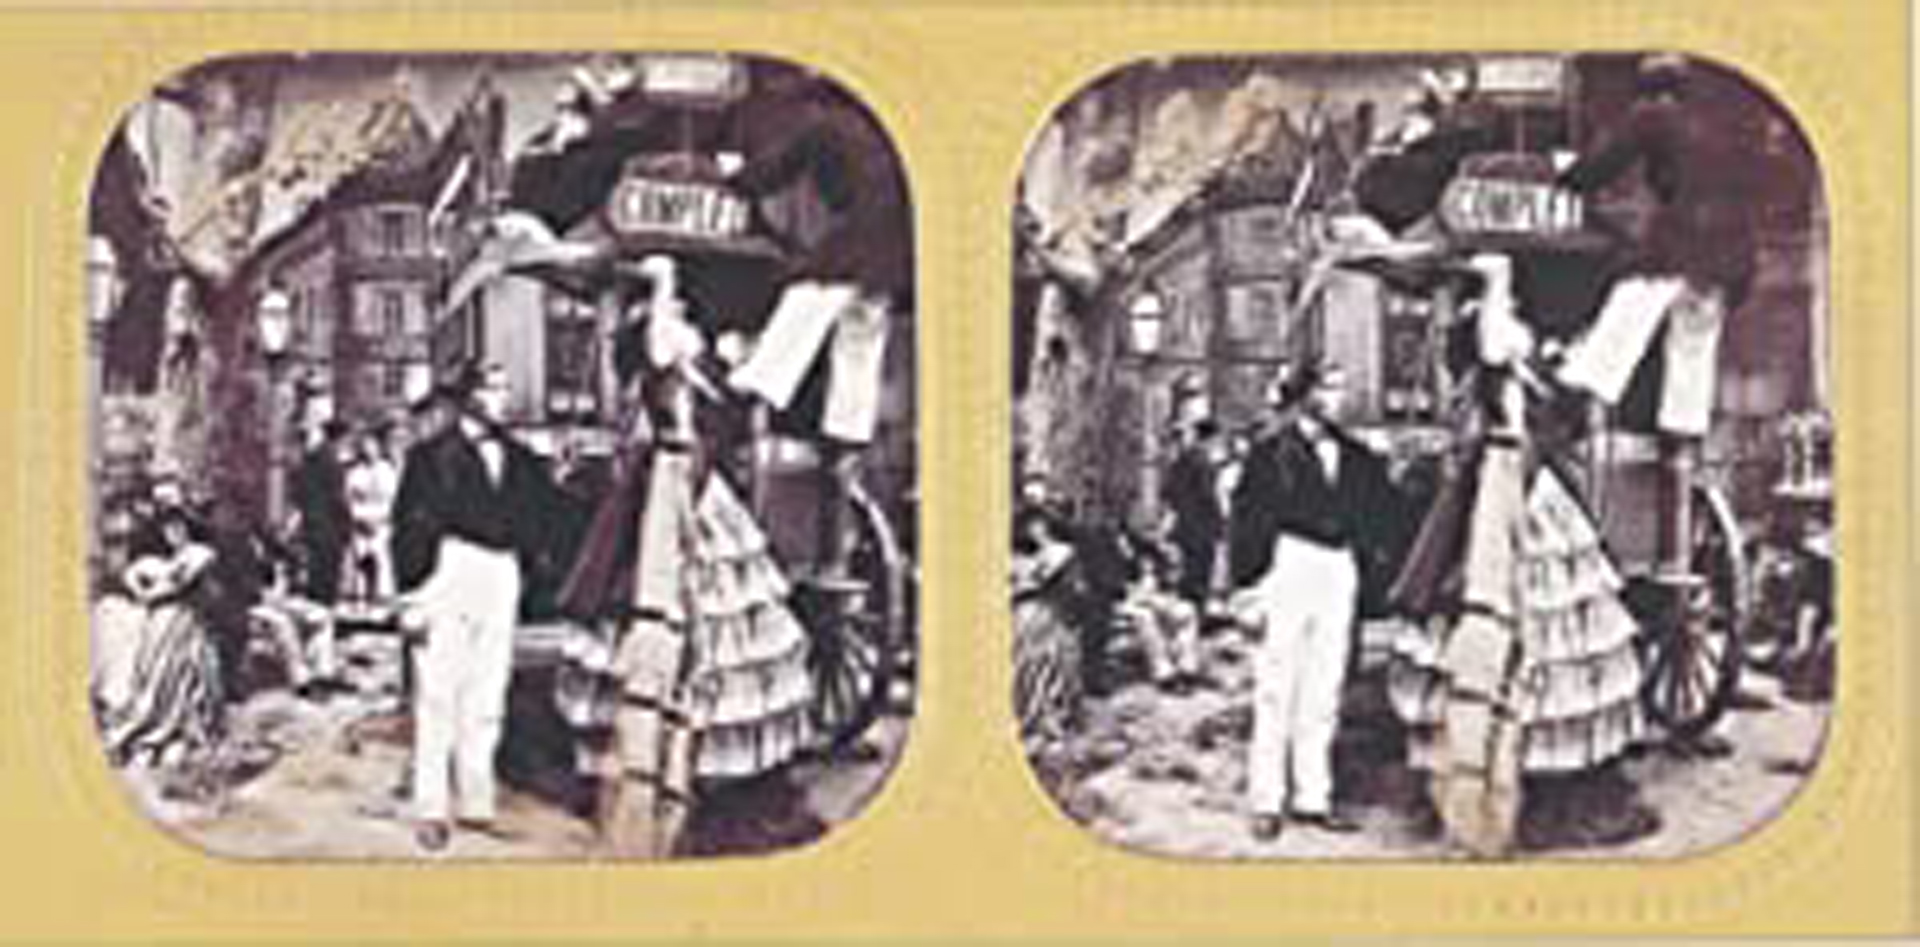 ©, Musée Carnavalet, Paris in 3-D: From stereoscopy to virtual reality, 1850-2000